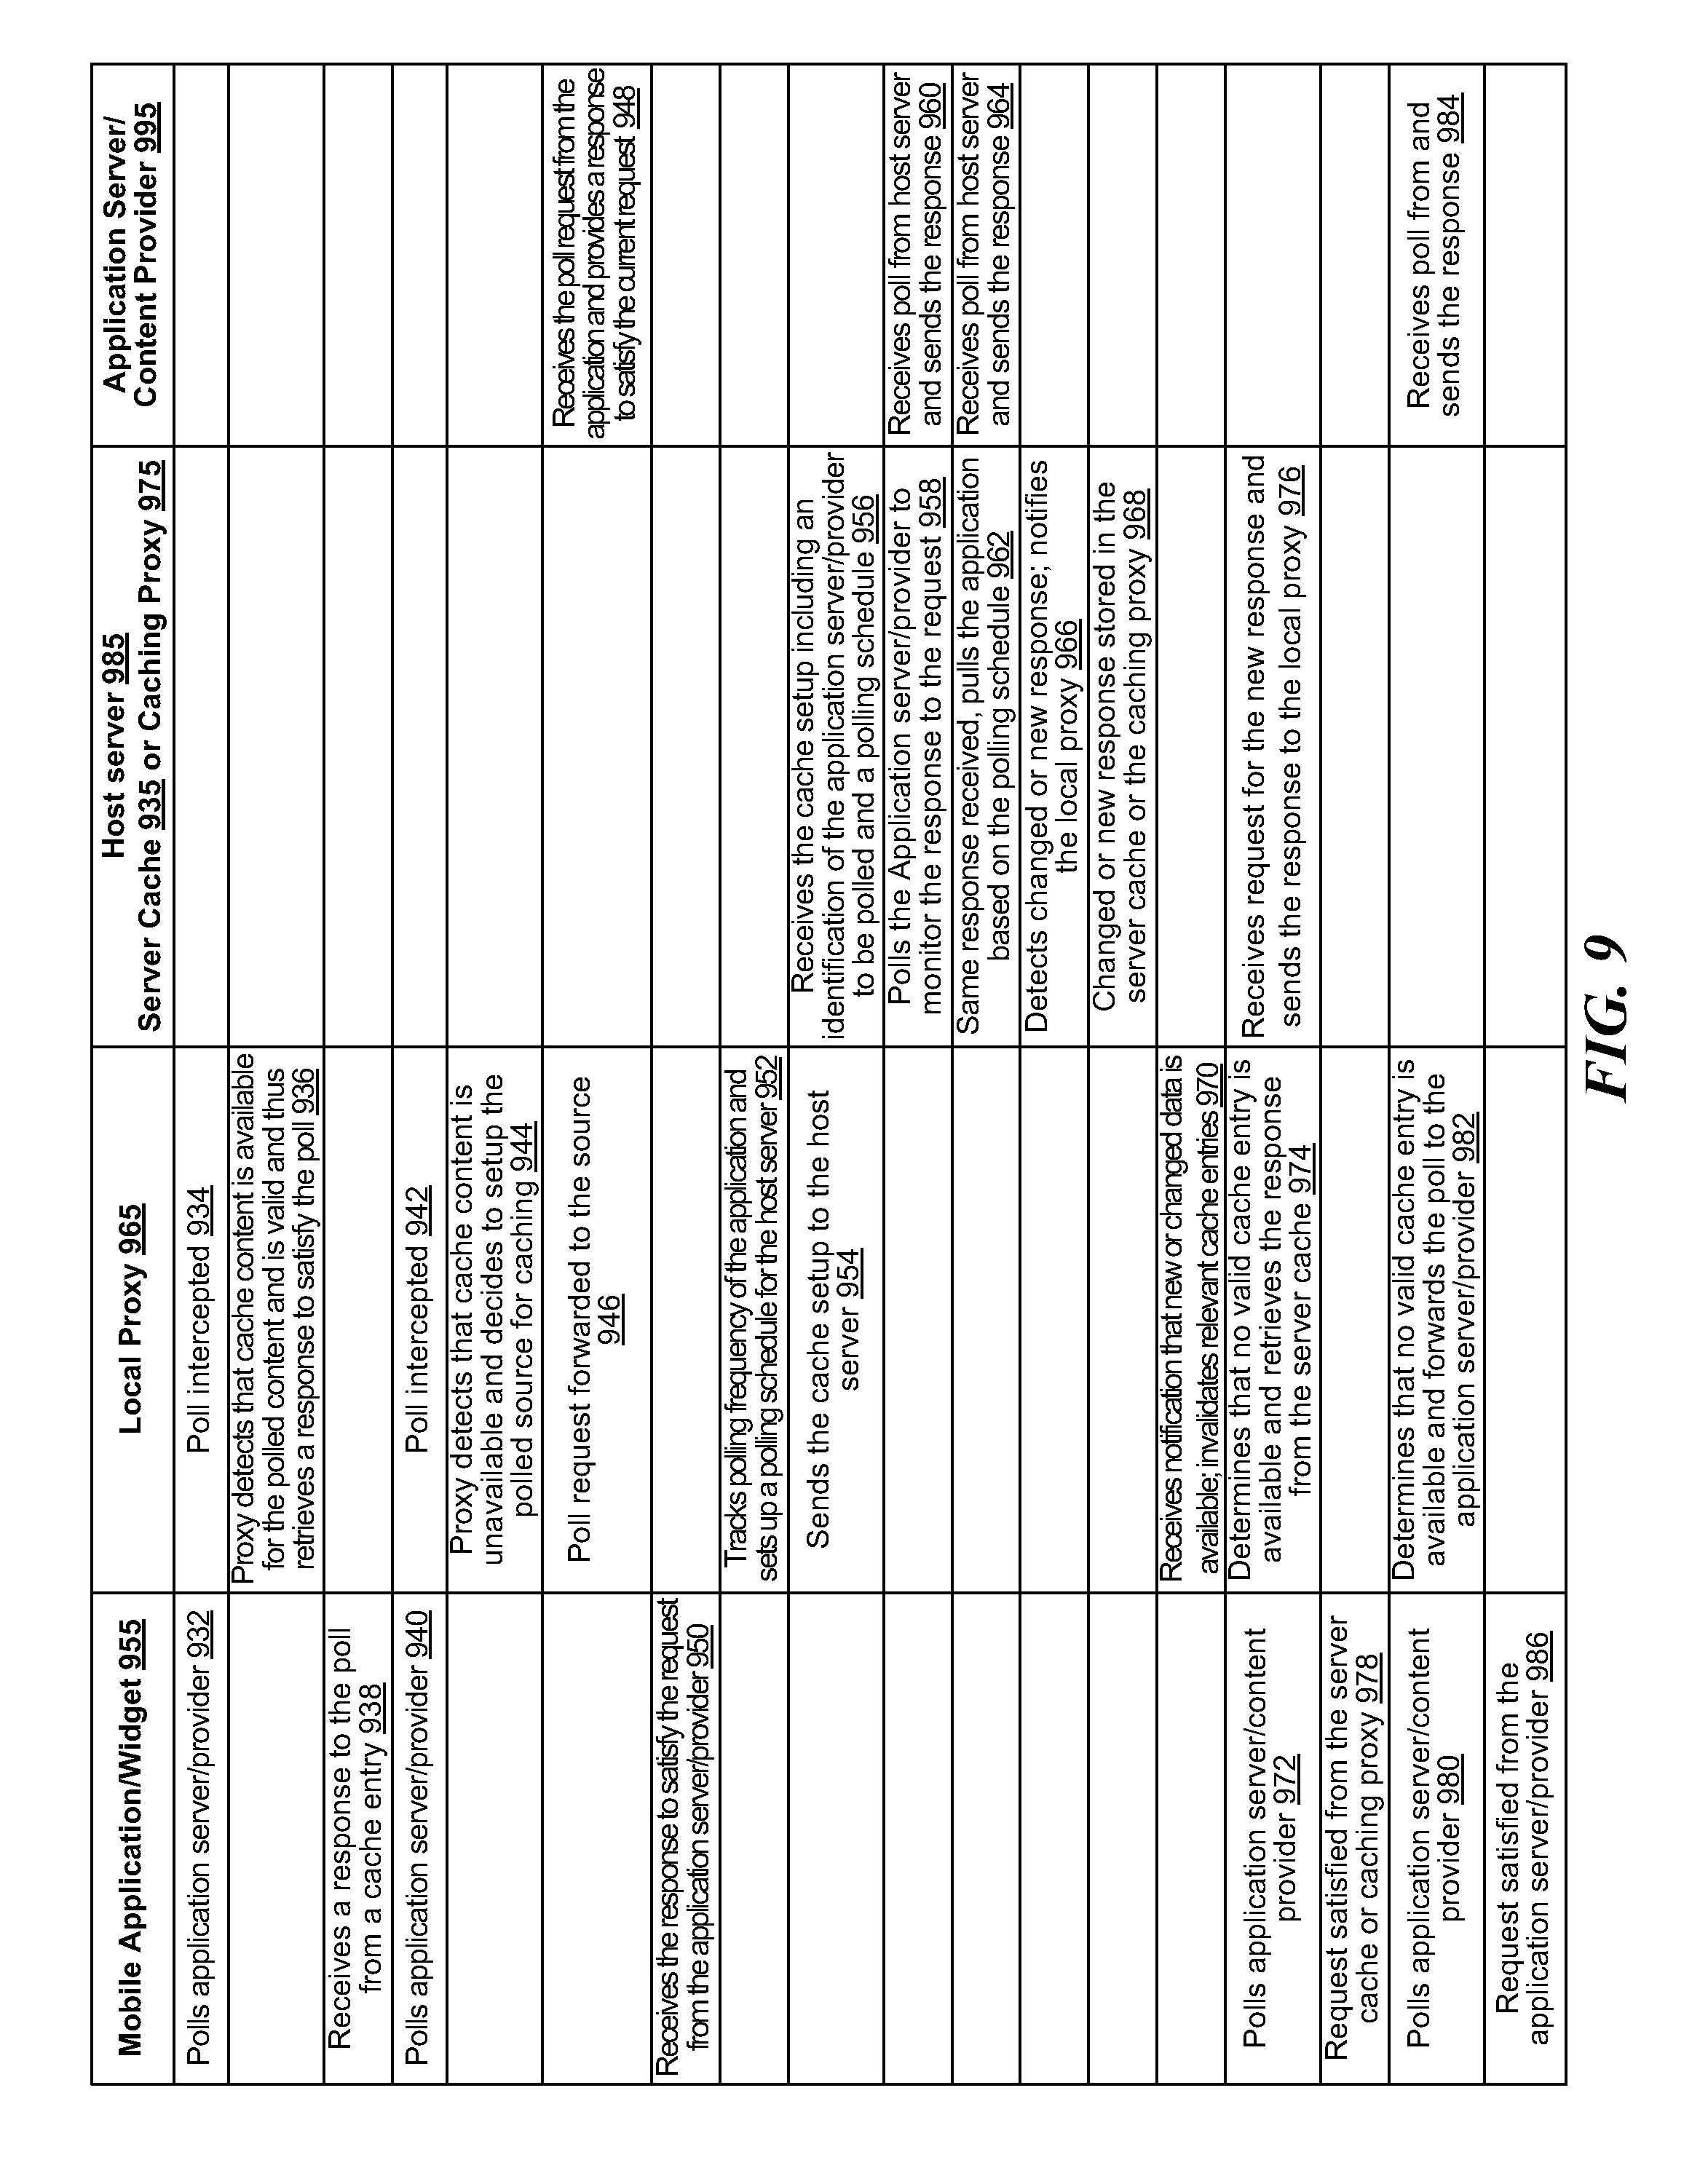 US20130159395A1 - Mobile network reporting and usage analytics